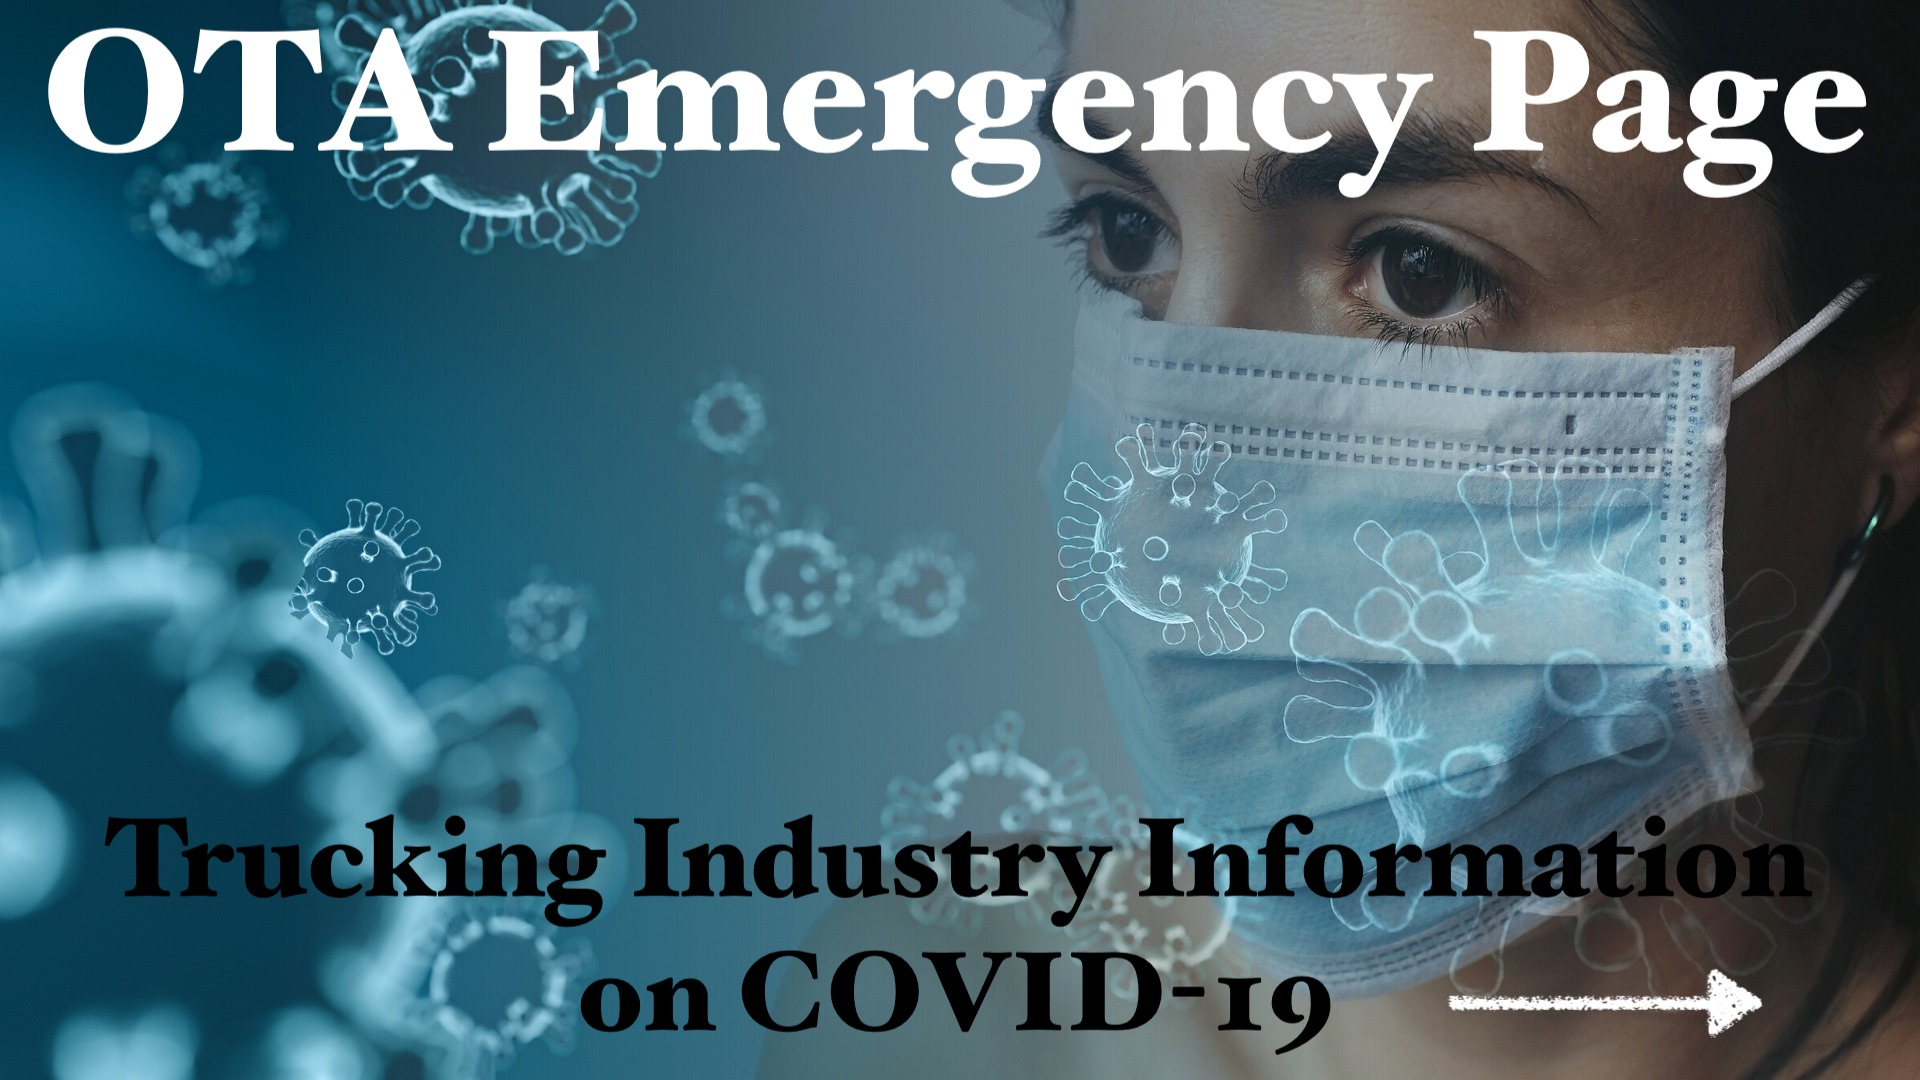 OTA Emergency Page - Trucking Industry Information on COVID-19/Coronavirus